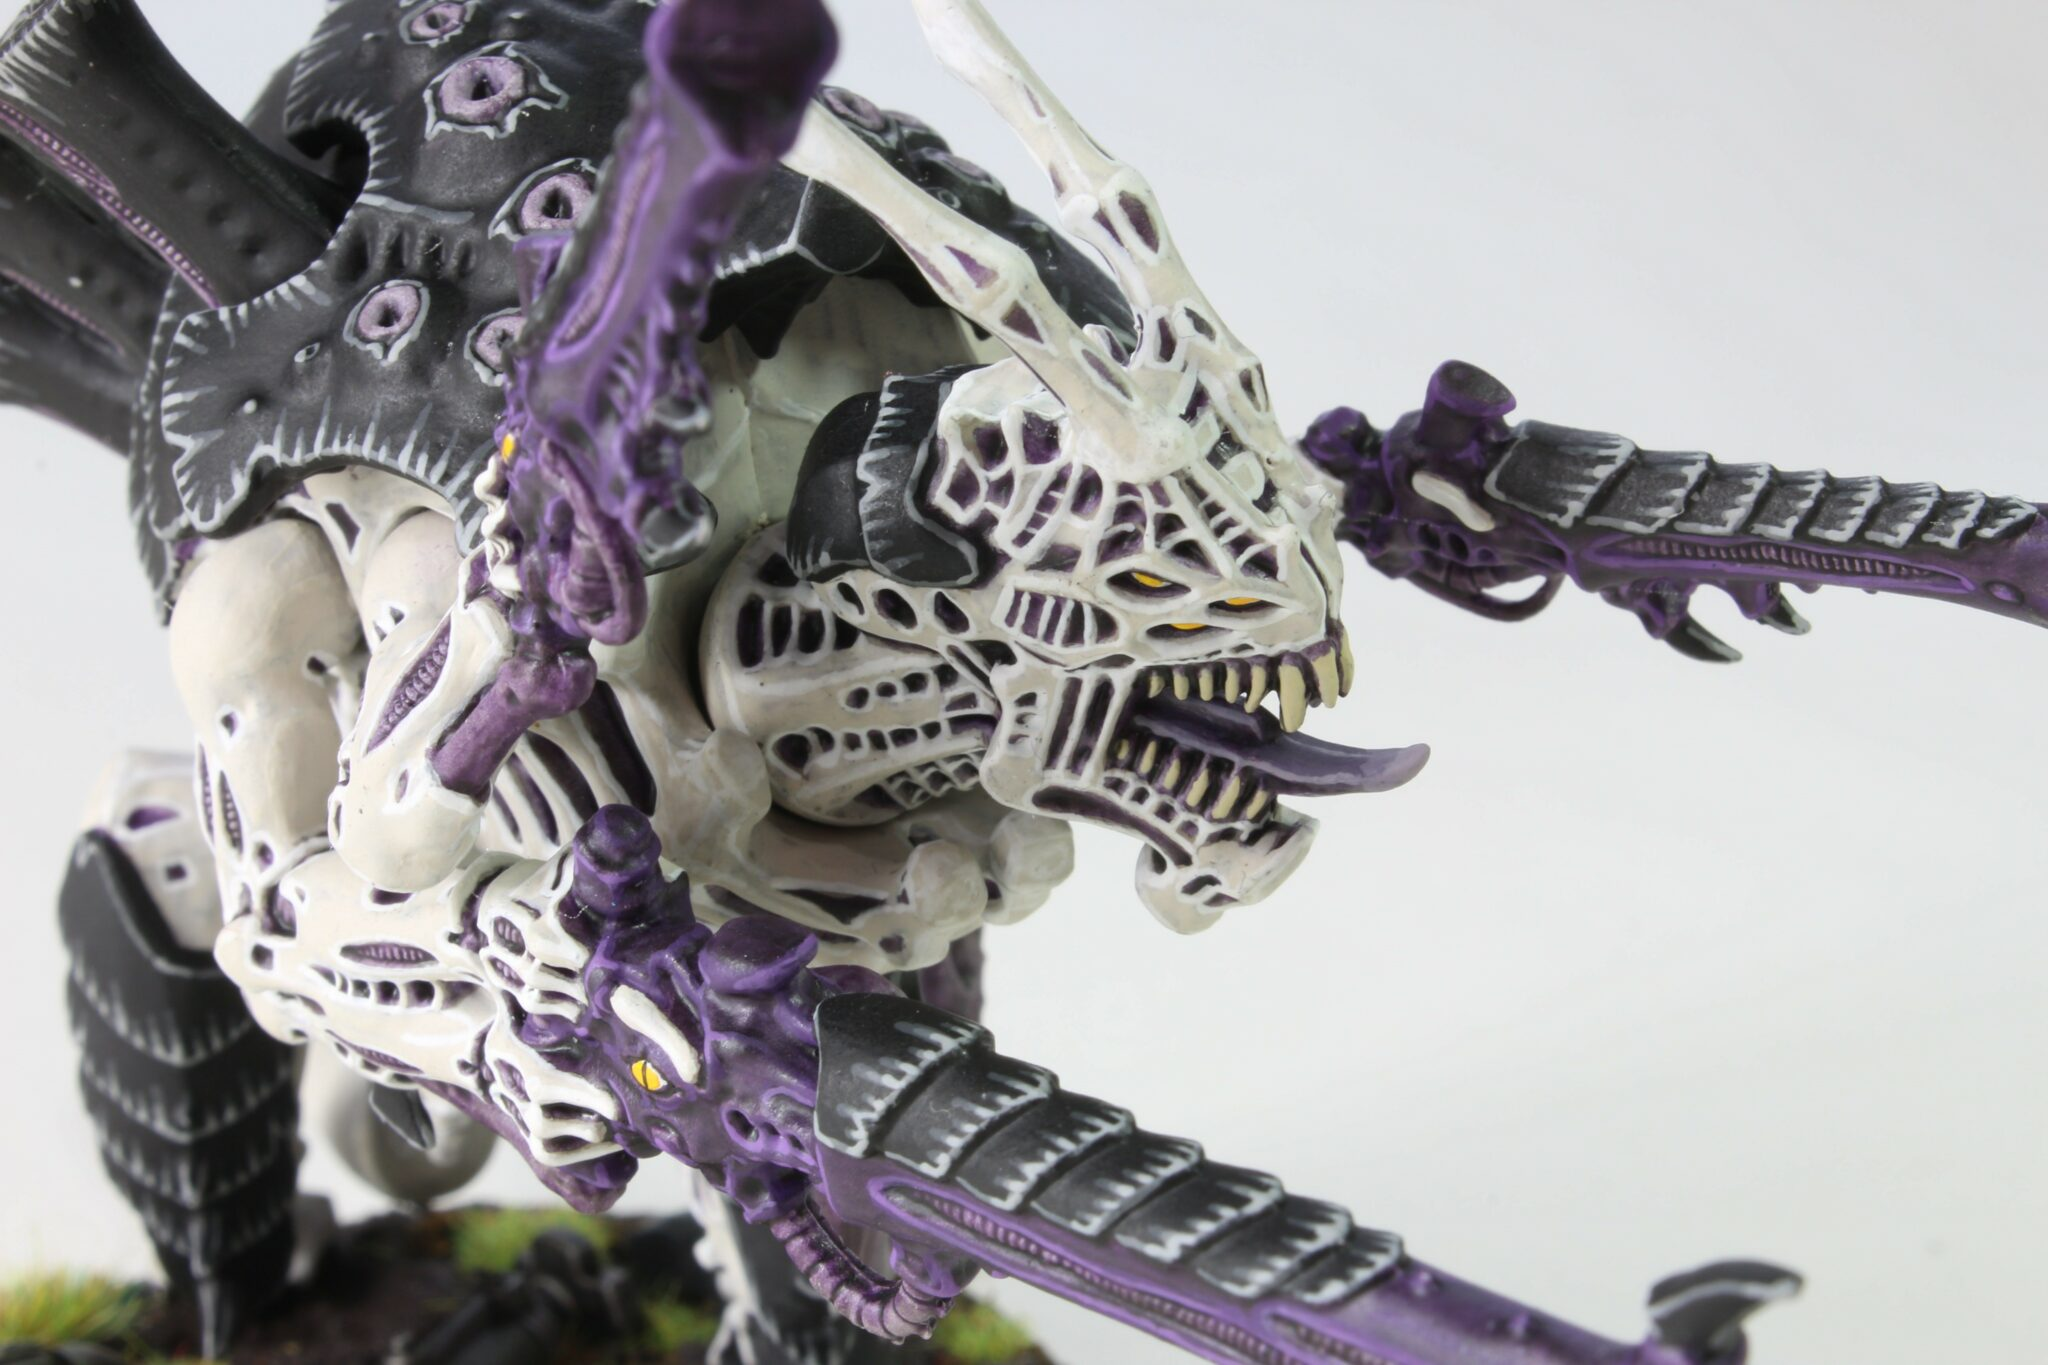 Tyranids - Carnifex - Venom Cannon - Face Right Side